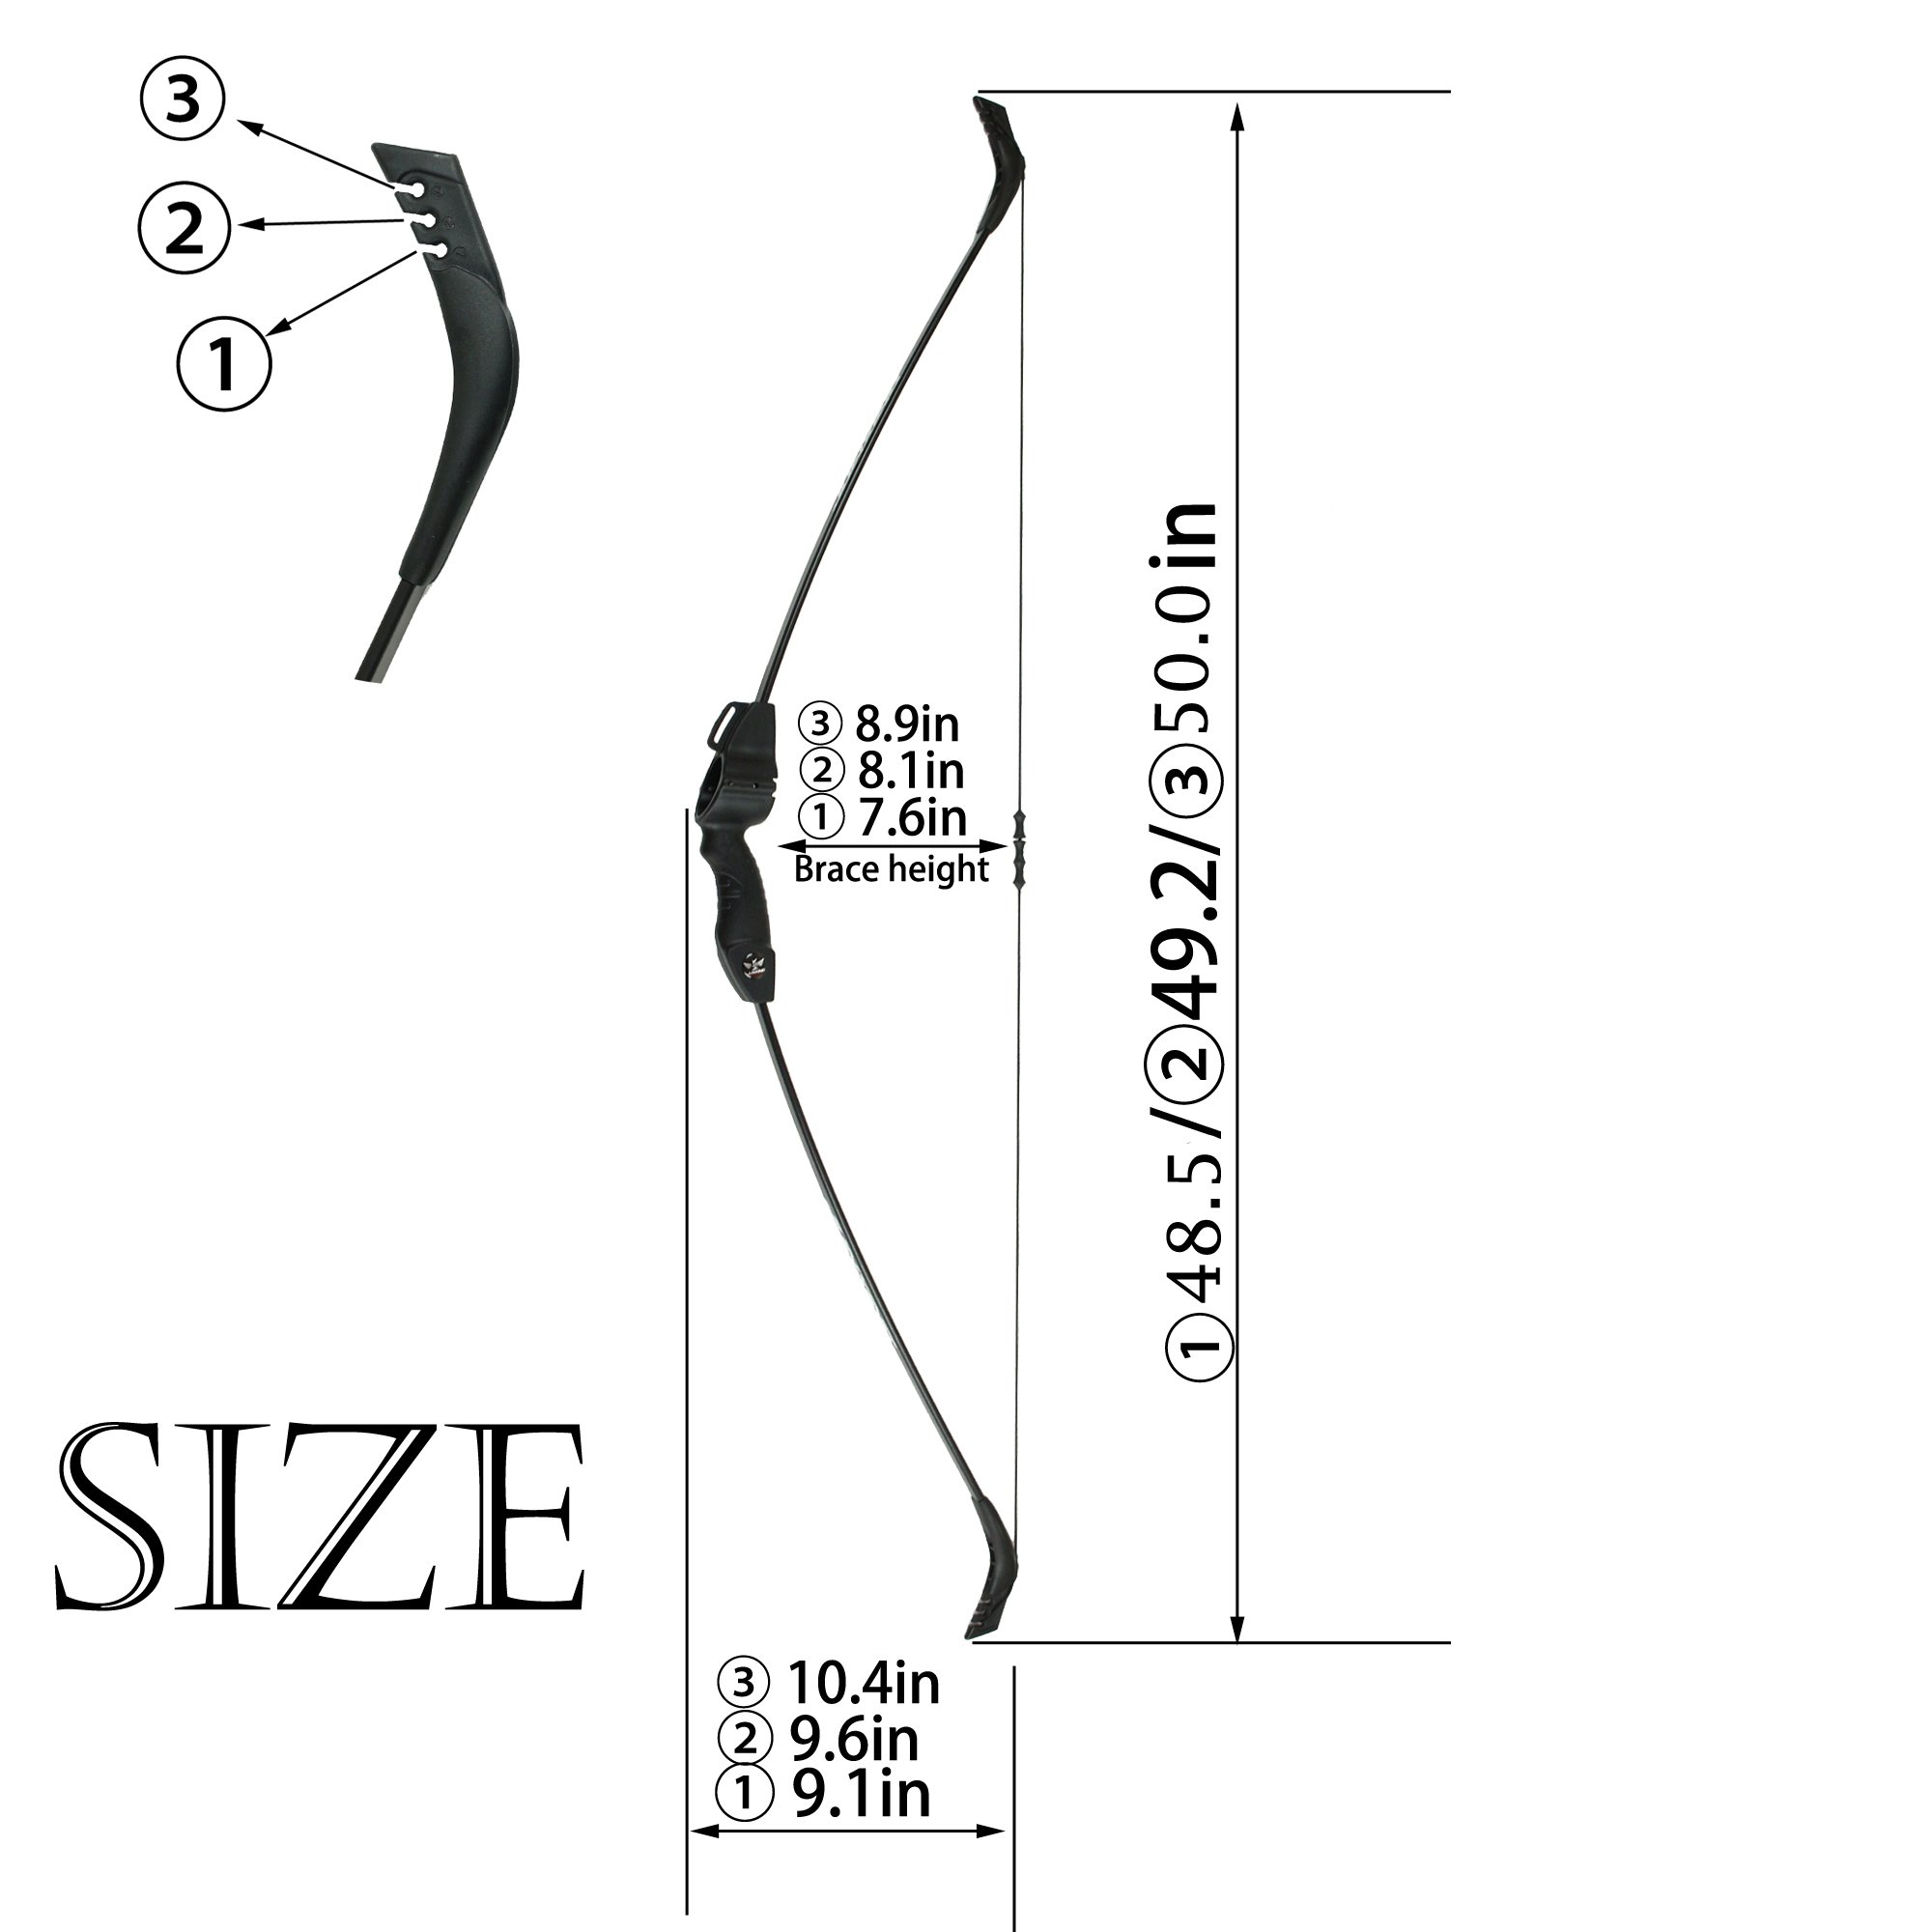 SinoArt Recurve Bow Adjustable Length 48.5''-50'' Draw Weight 14-16 Lb Right and Left Hand with 9 Arrows and 3 Target Faces by SinoArt (Image #2)